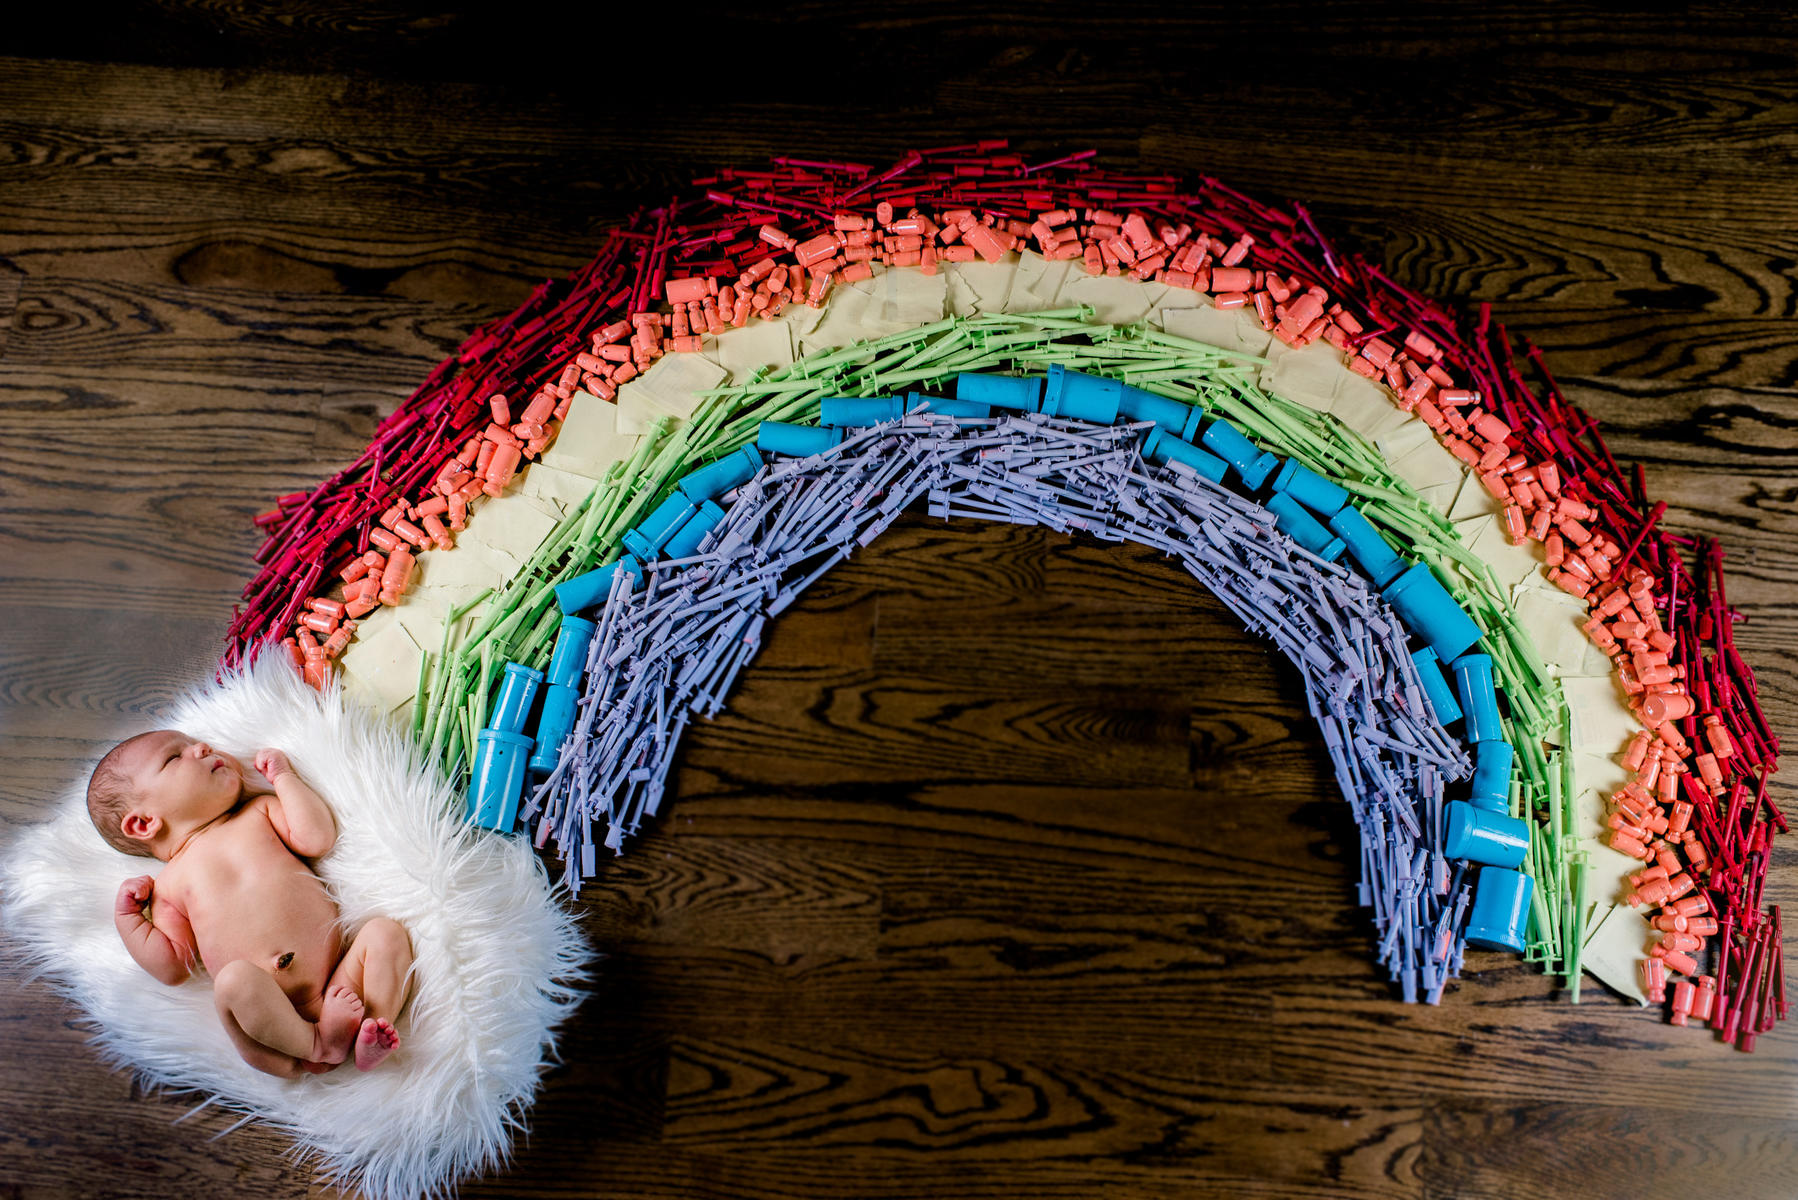 How One Mom's IVF Journey Led to a Stunning Photo of Her Double Rainbow Baby